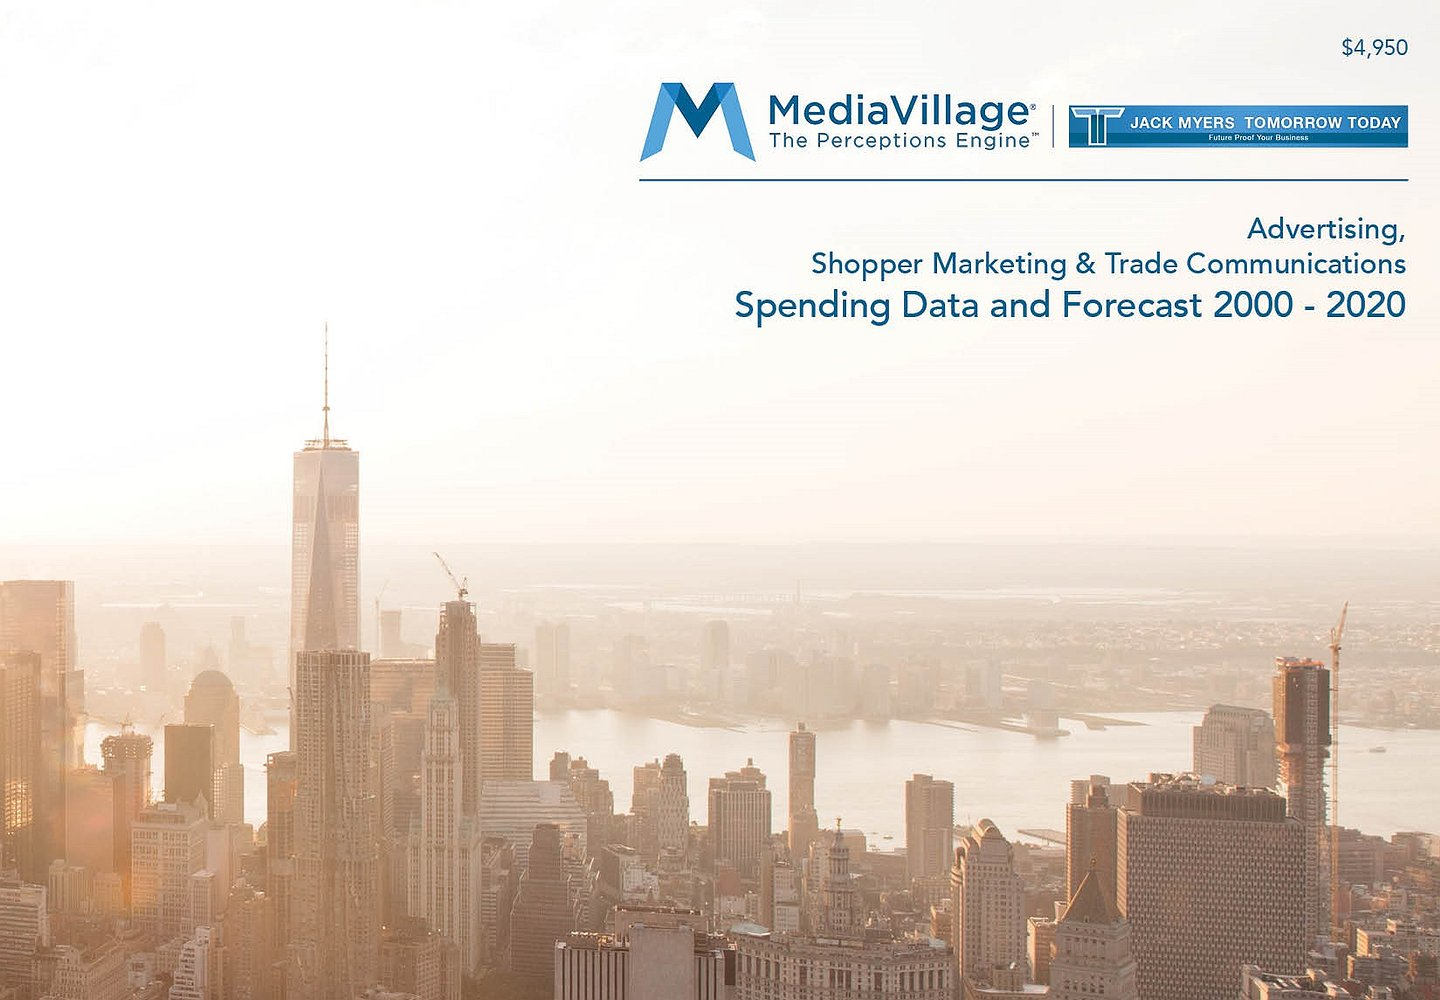 Download Now: Total U.S. Print-Originated Content Ad Spend Decline May Be Over